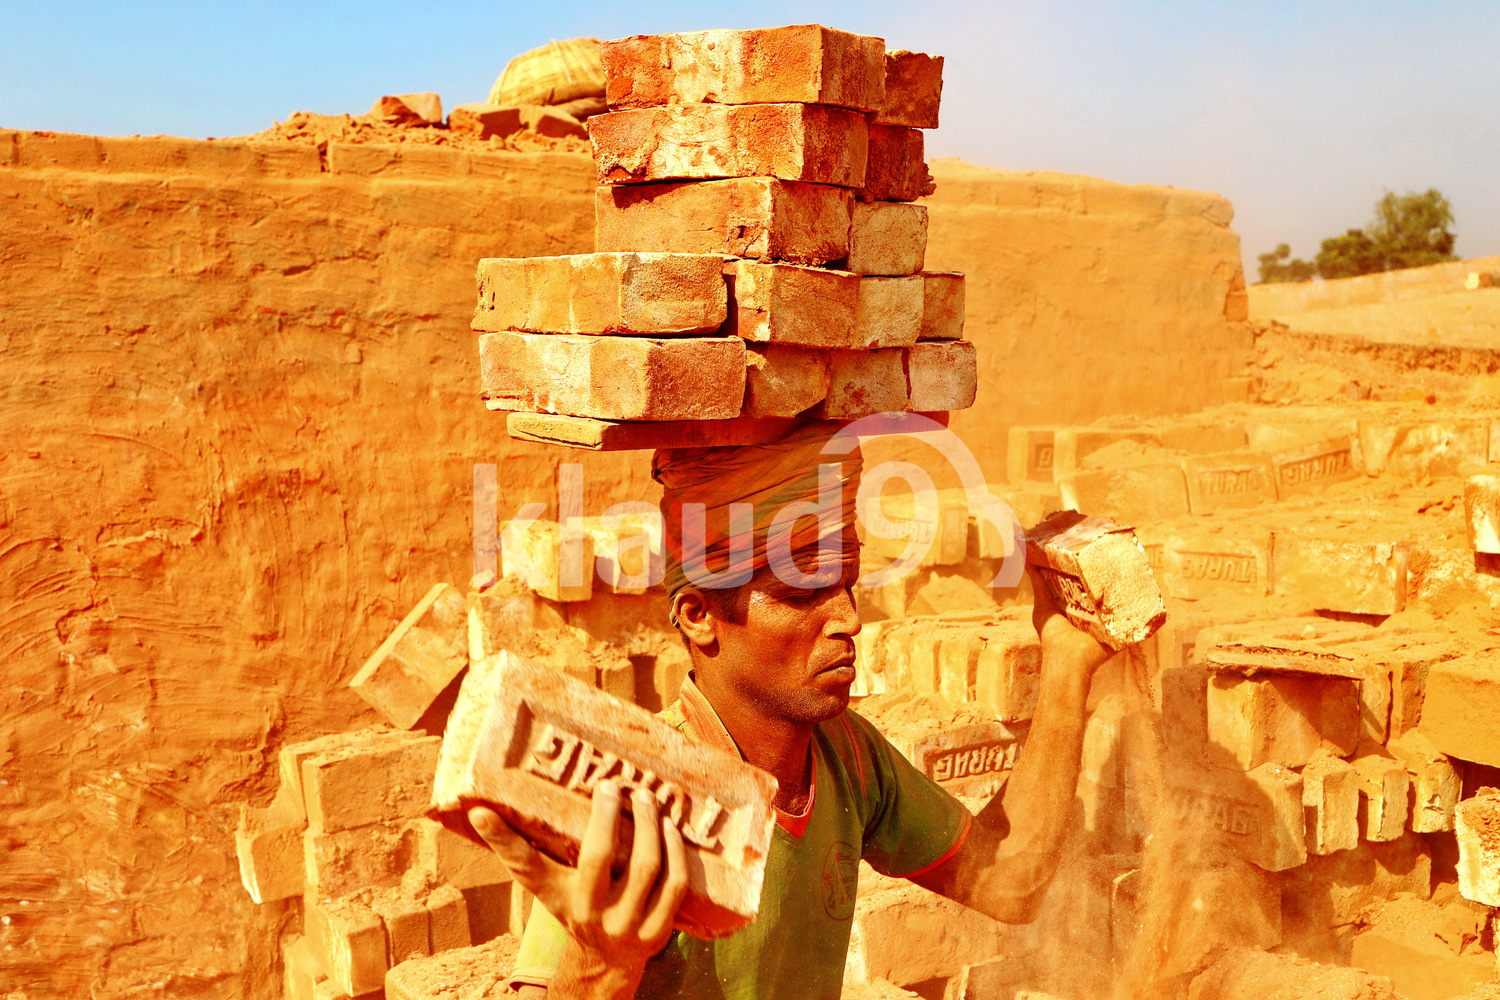 Indian man carrying bricks on his head